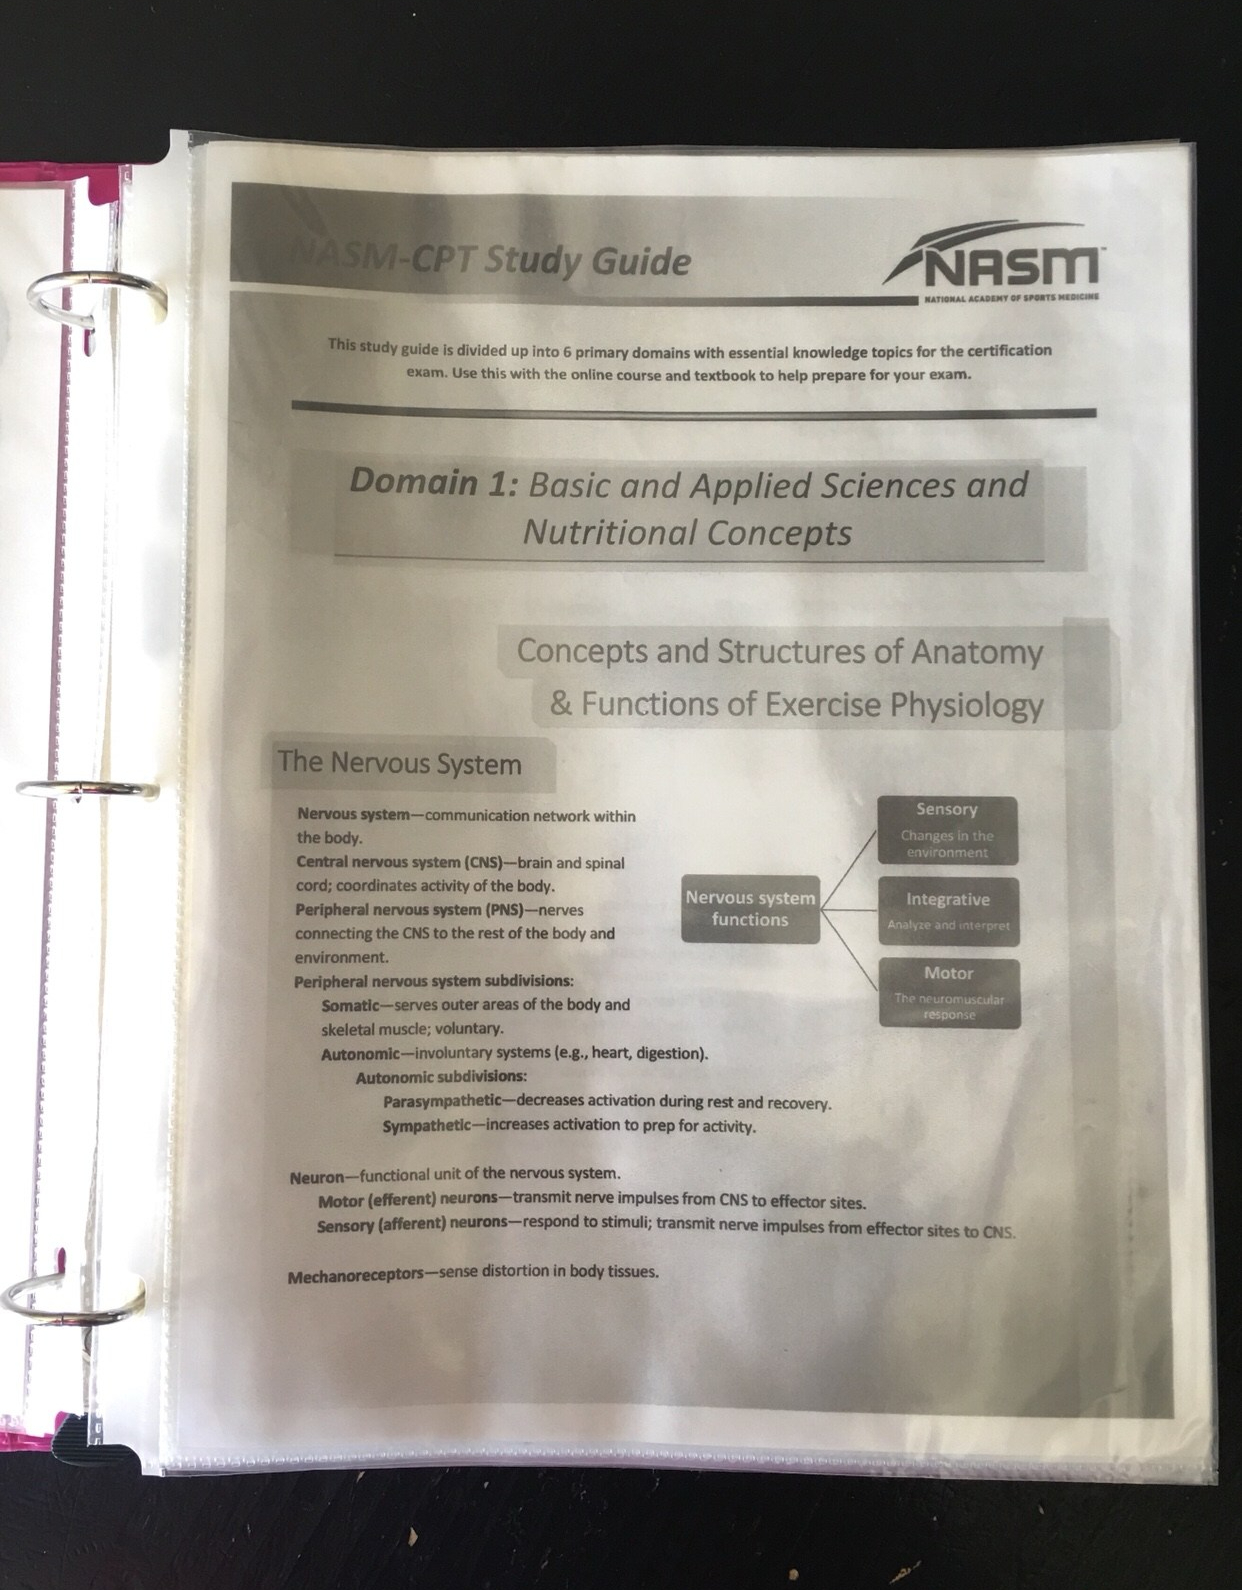 Nasm cpt study guide 2013 ebook array cpt test study guide 2013 rh cpt test study guide 2013 mollysmenu us fandeluxe Images